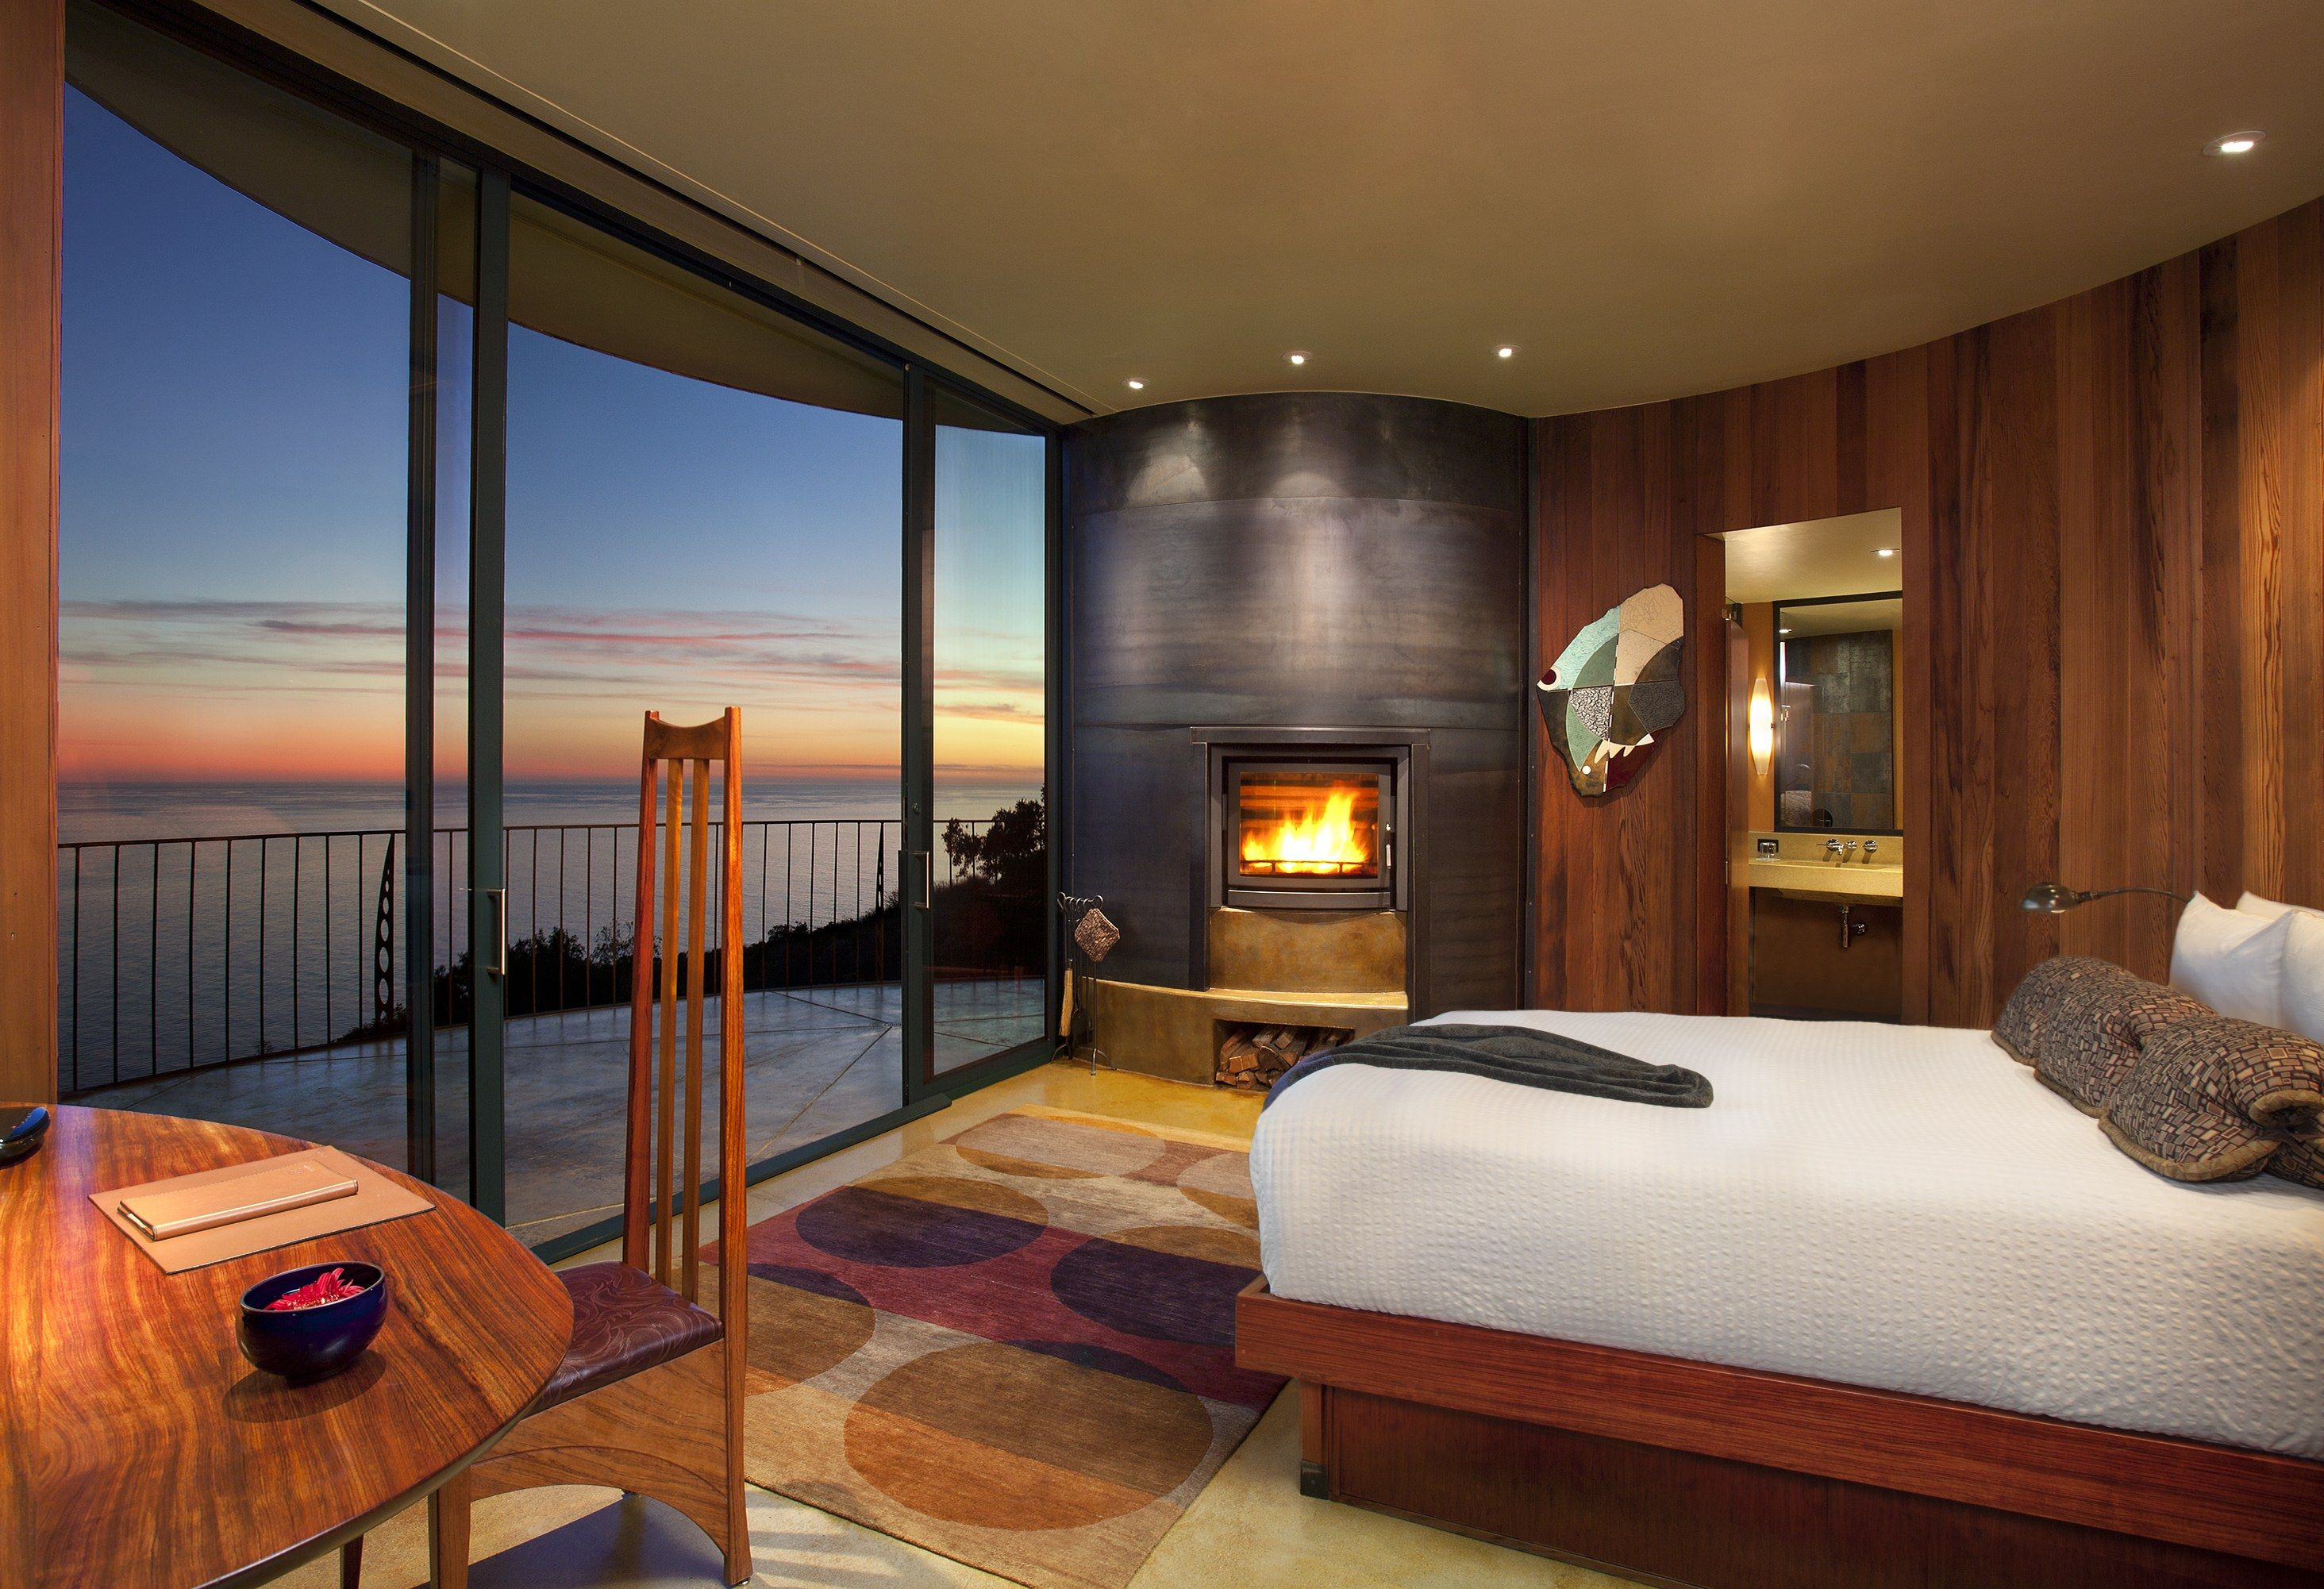 The Most Romantic Hotel Rooms in the USA